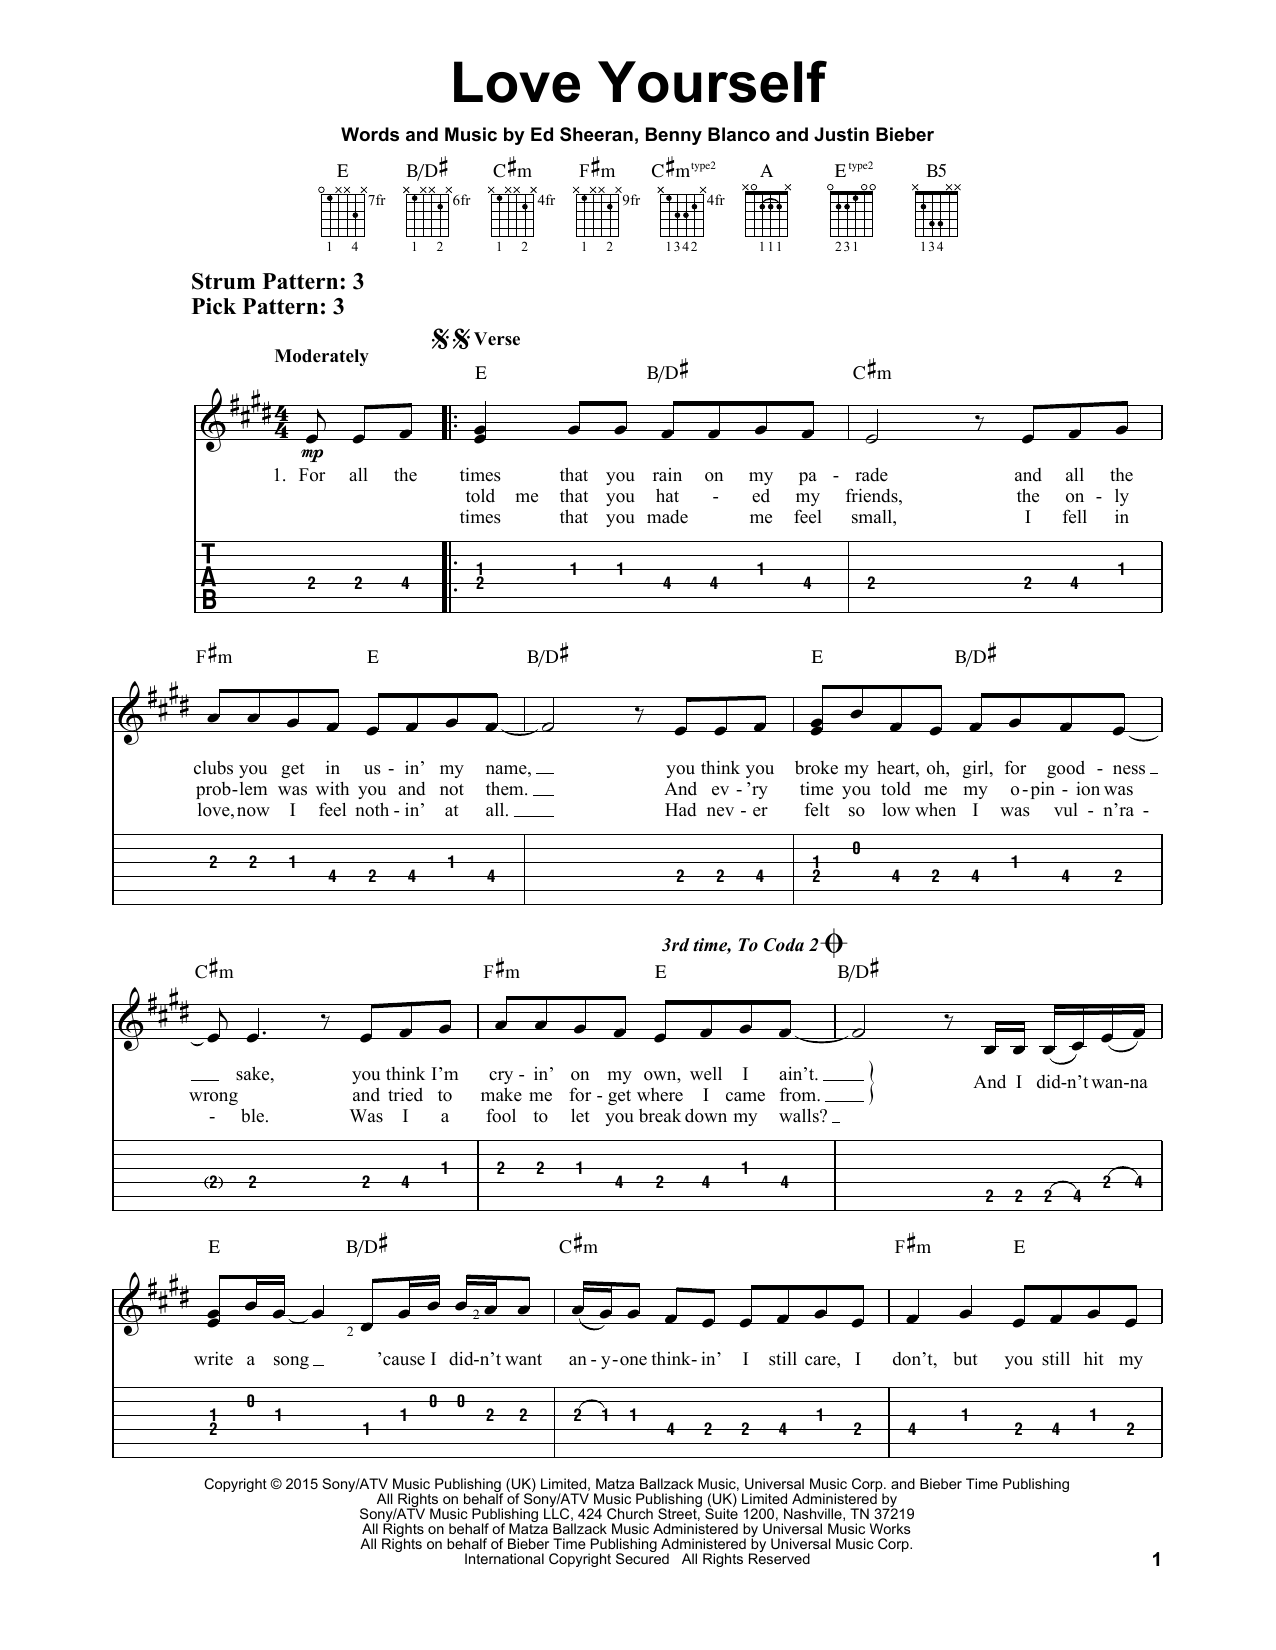 Love Yourself sheet music by Justin Bieber (Easy Guitar Tab u2013 163991)